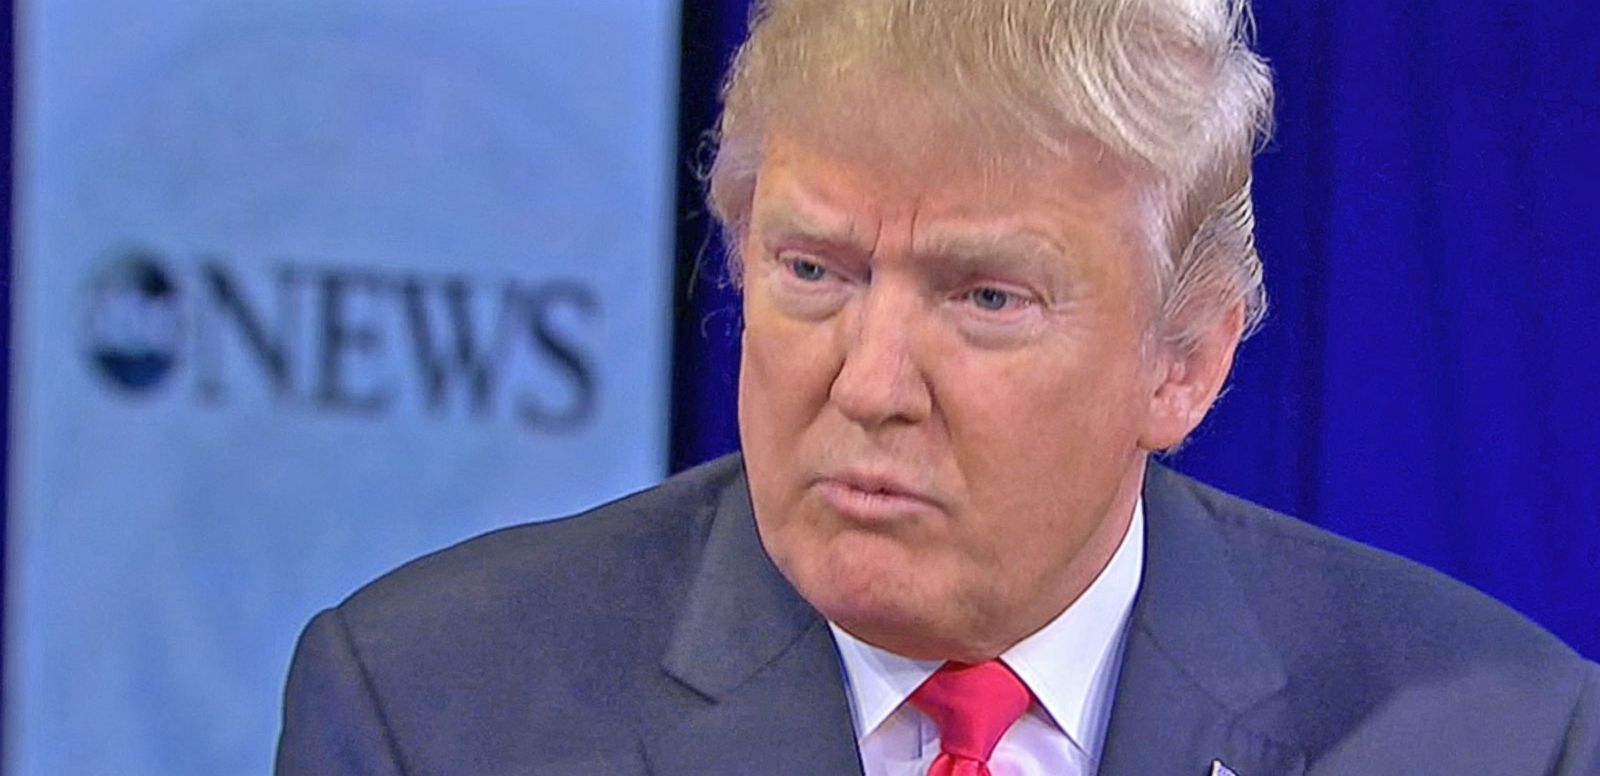 VIDEO: Donald Trump on GOP Debate and New Hampshire Primary